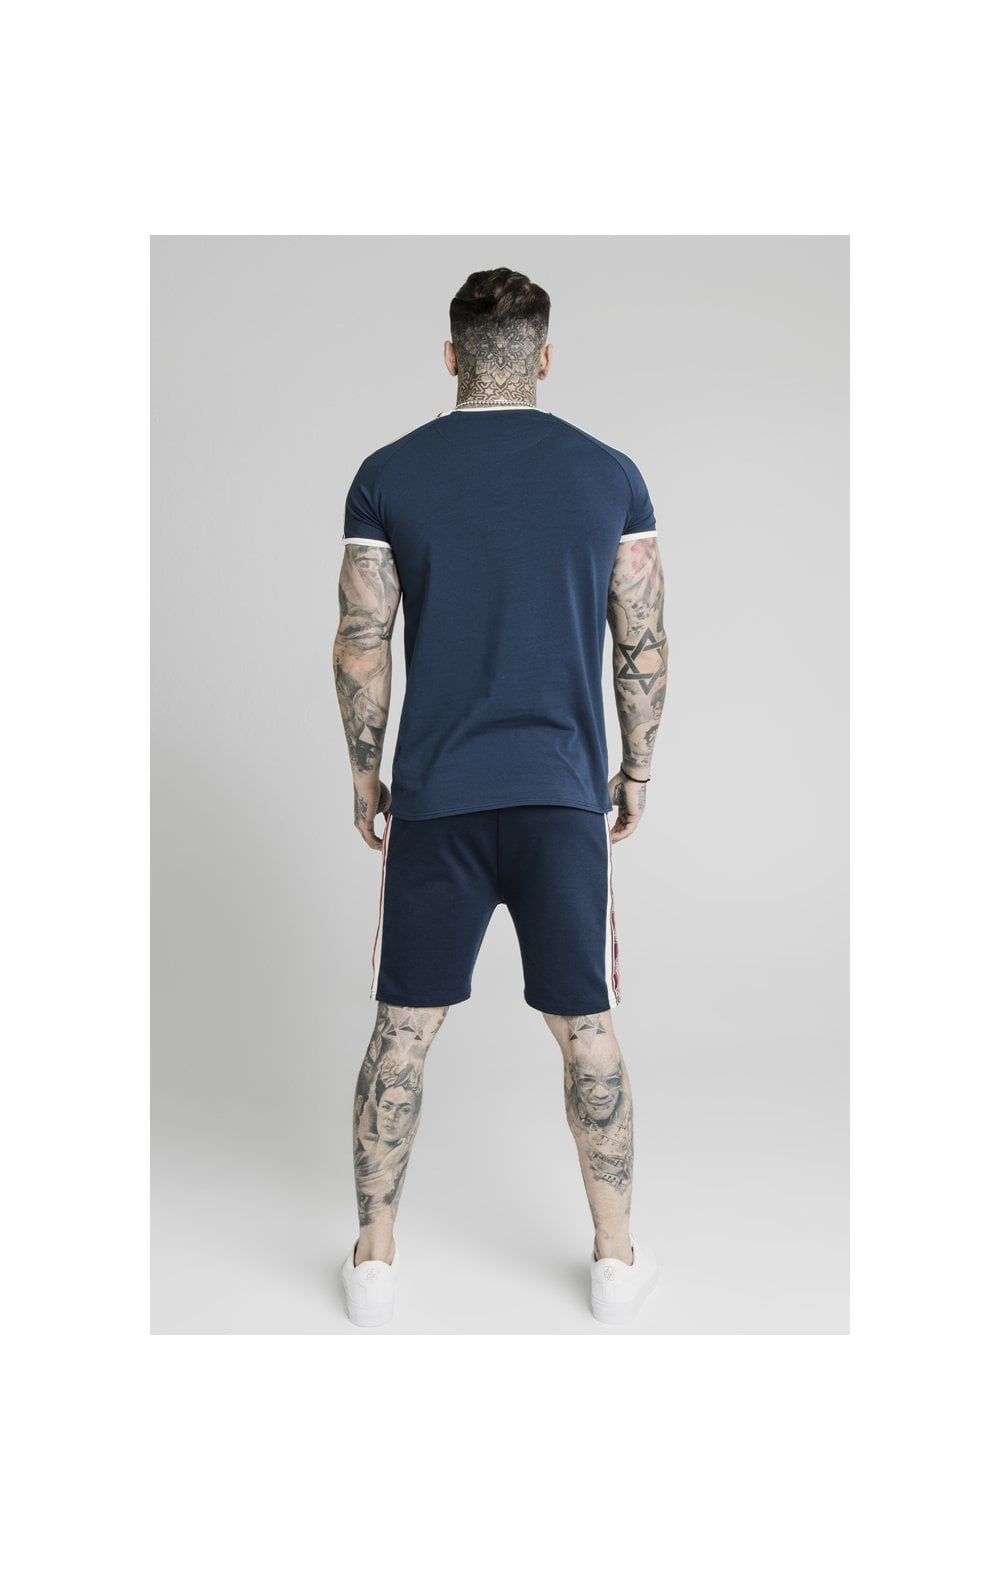 SikSilk Retro Tape Gym Tee - Navy (6)